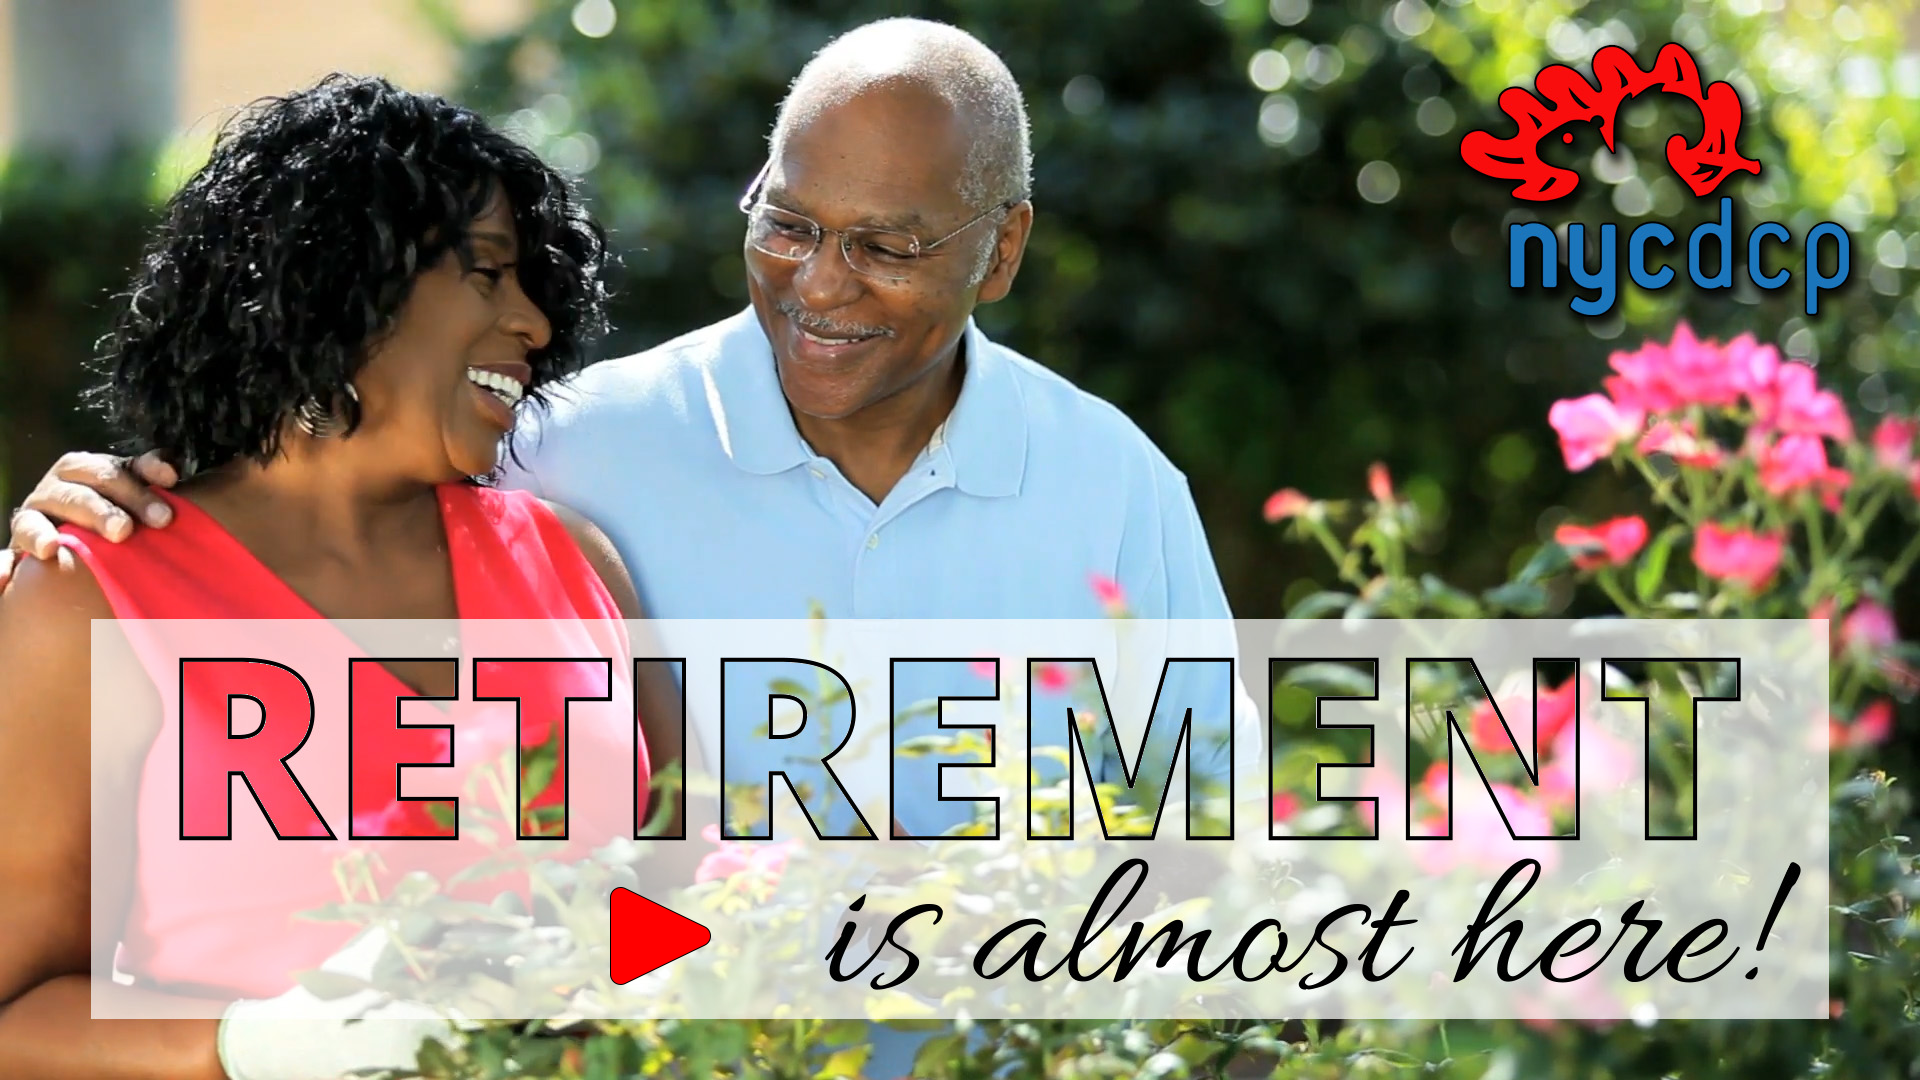 Retirement is Almost Here